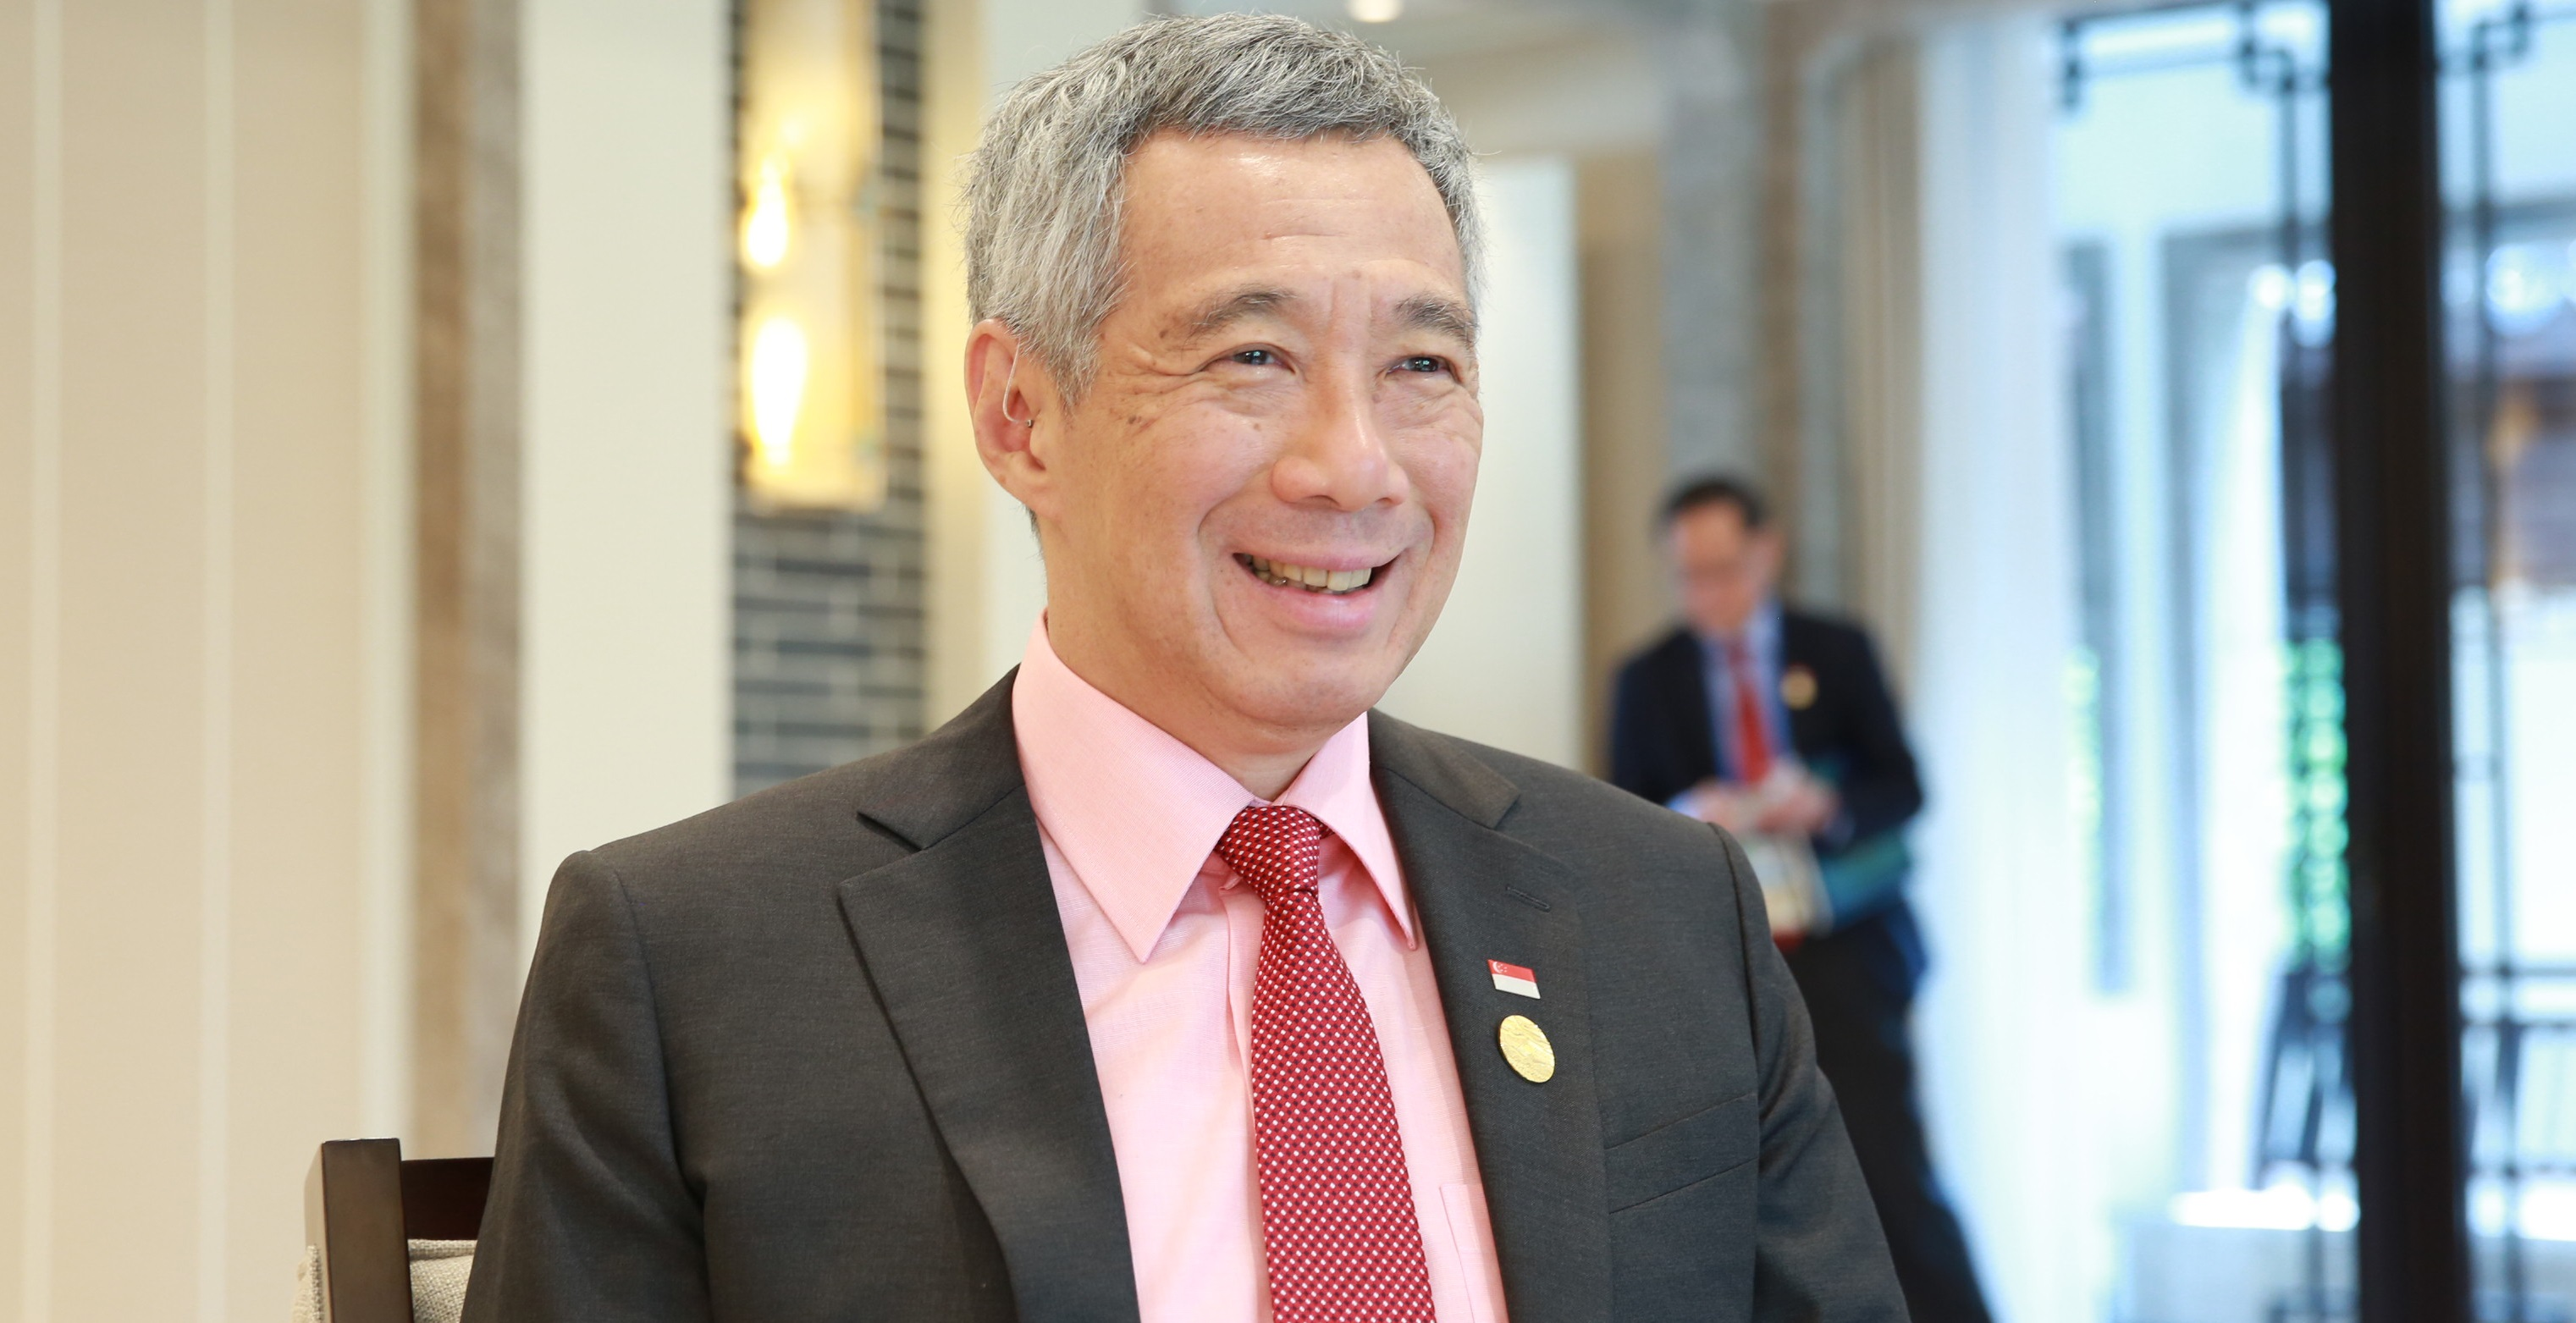 Prime Minister of Singapore Lee Hsien Loong. Photo courtesy: pmo.gov.sg